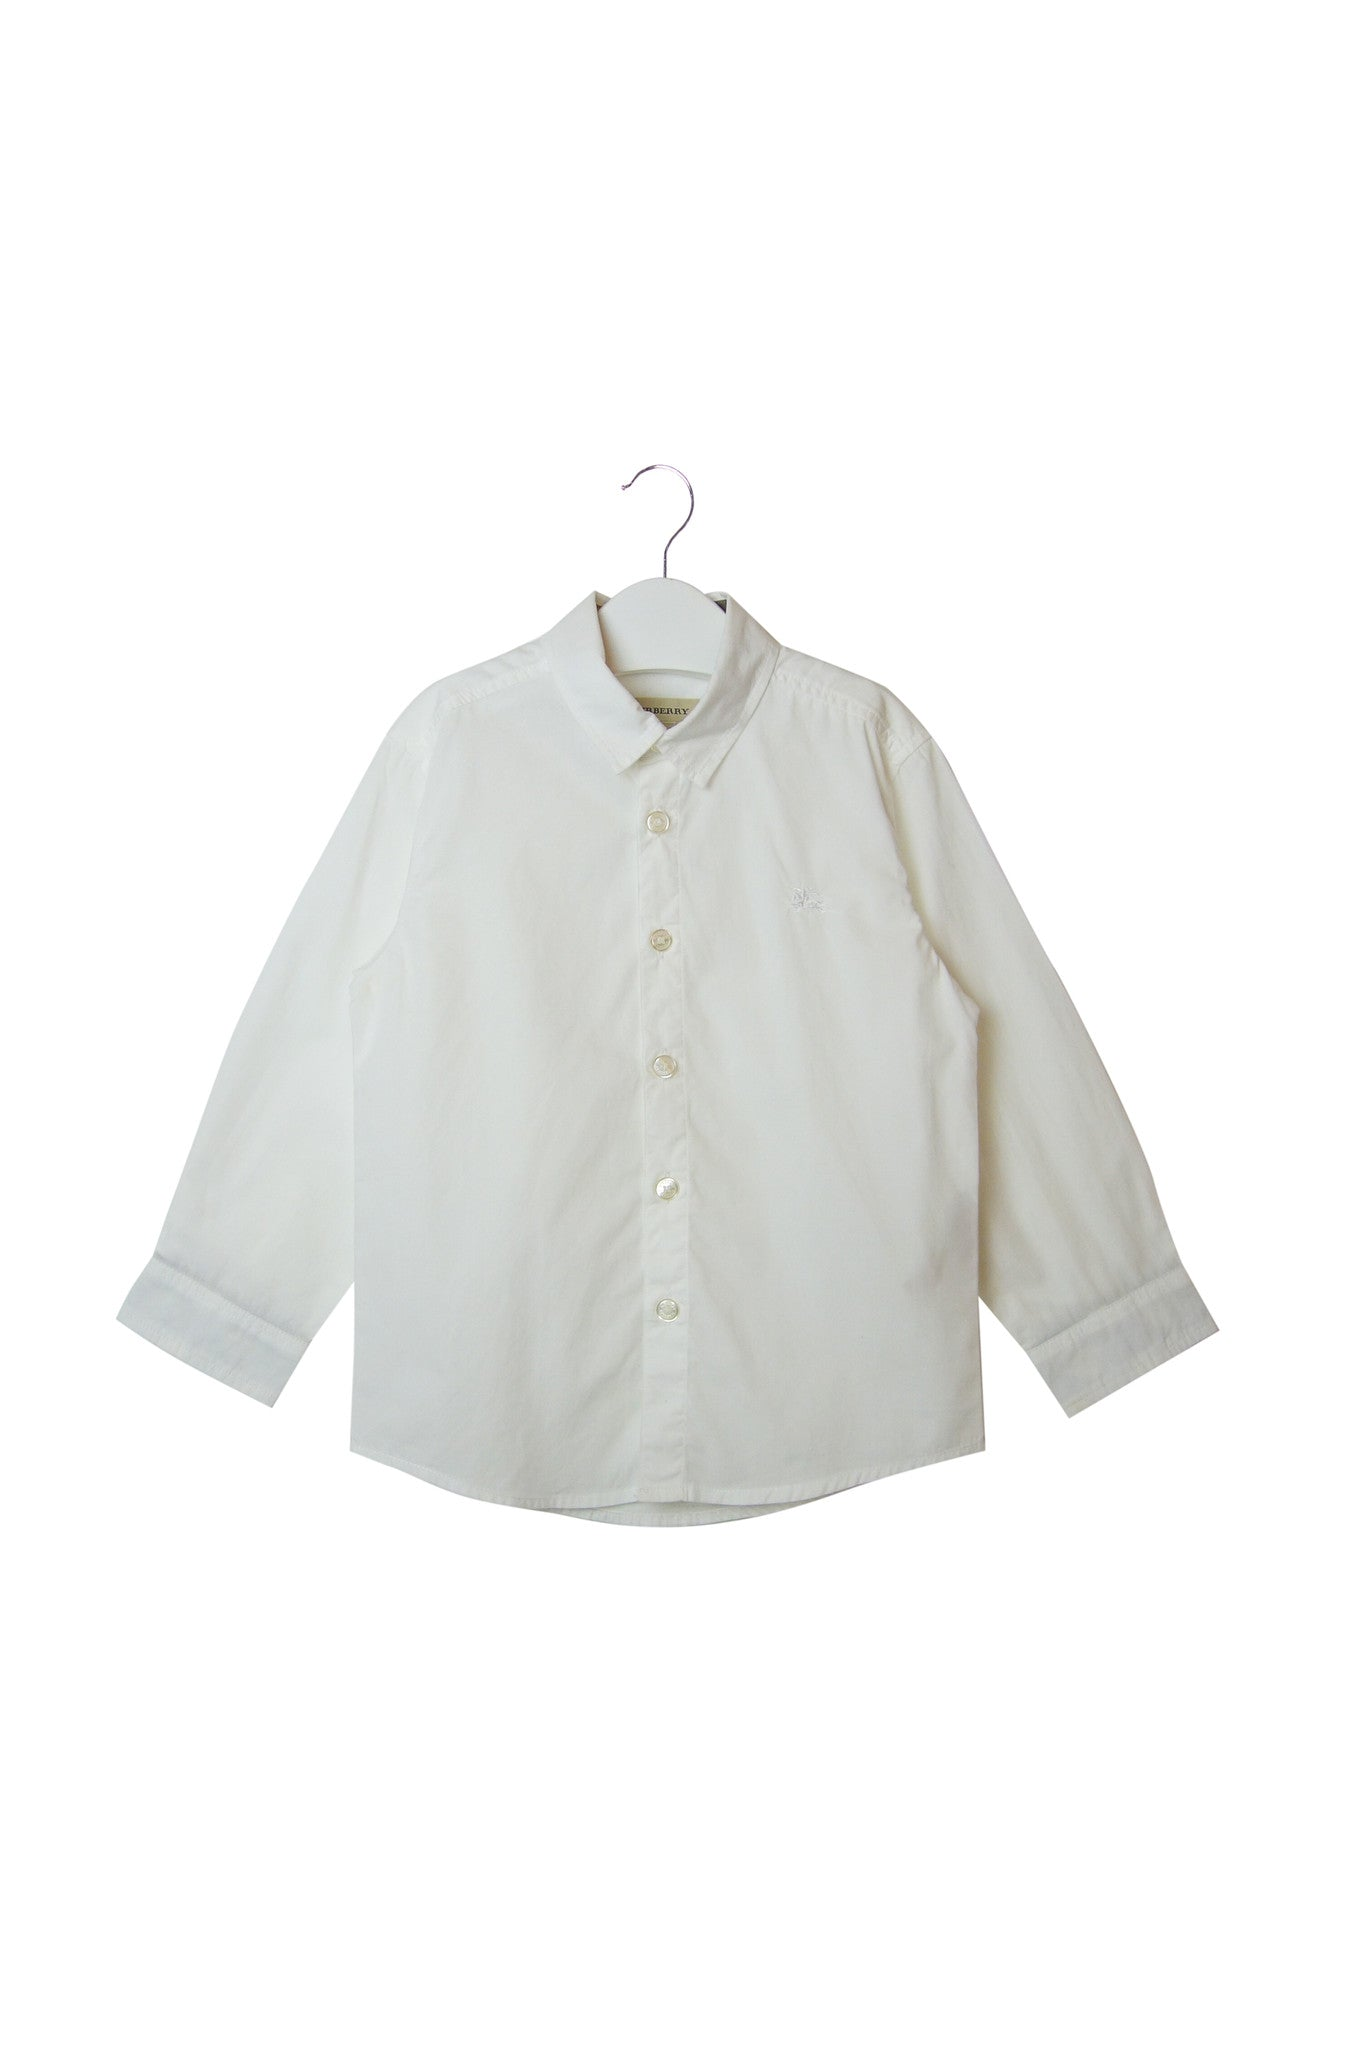 10003308 Burberry Kids~Shirt 3T at Retykle